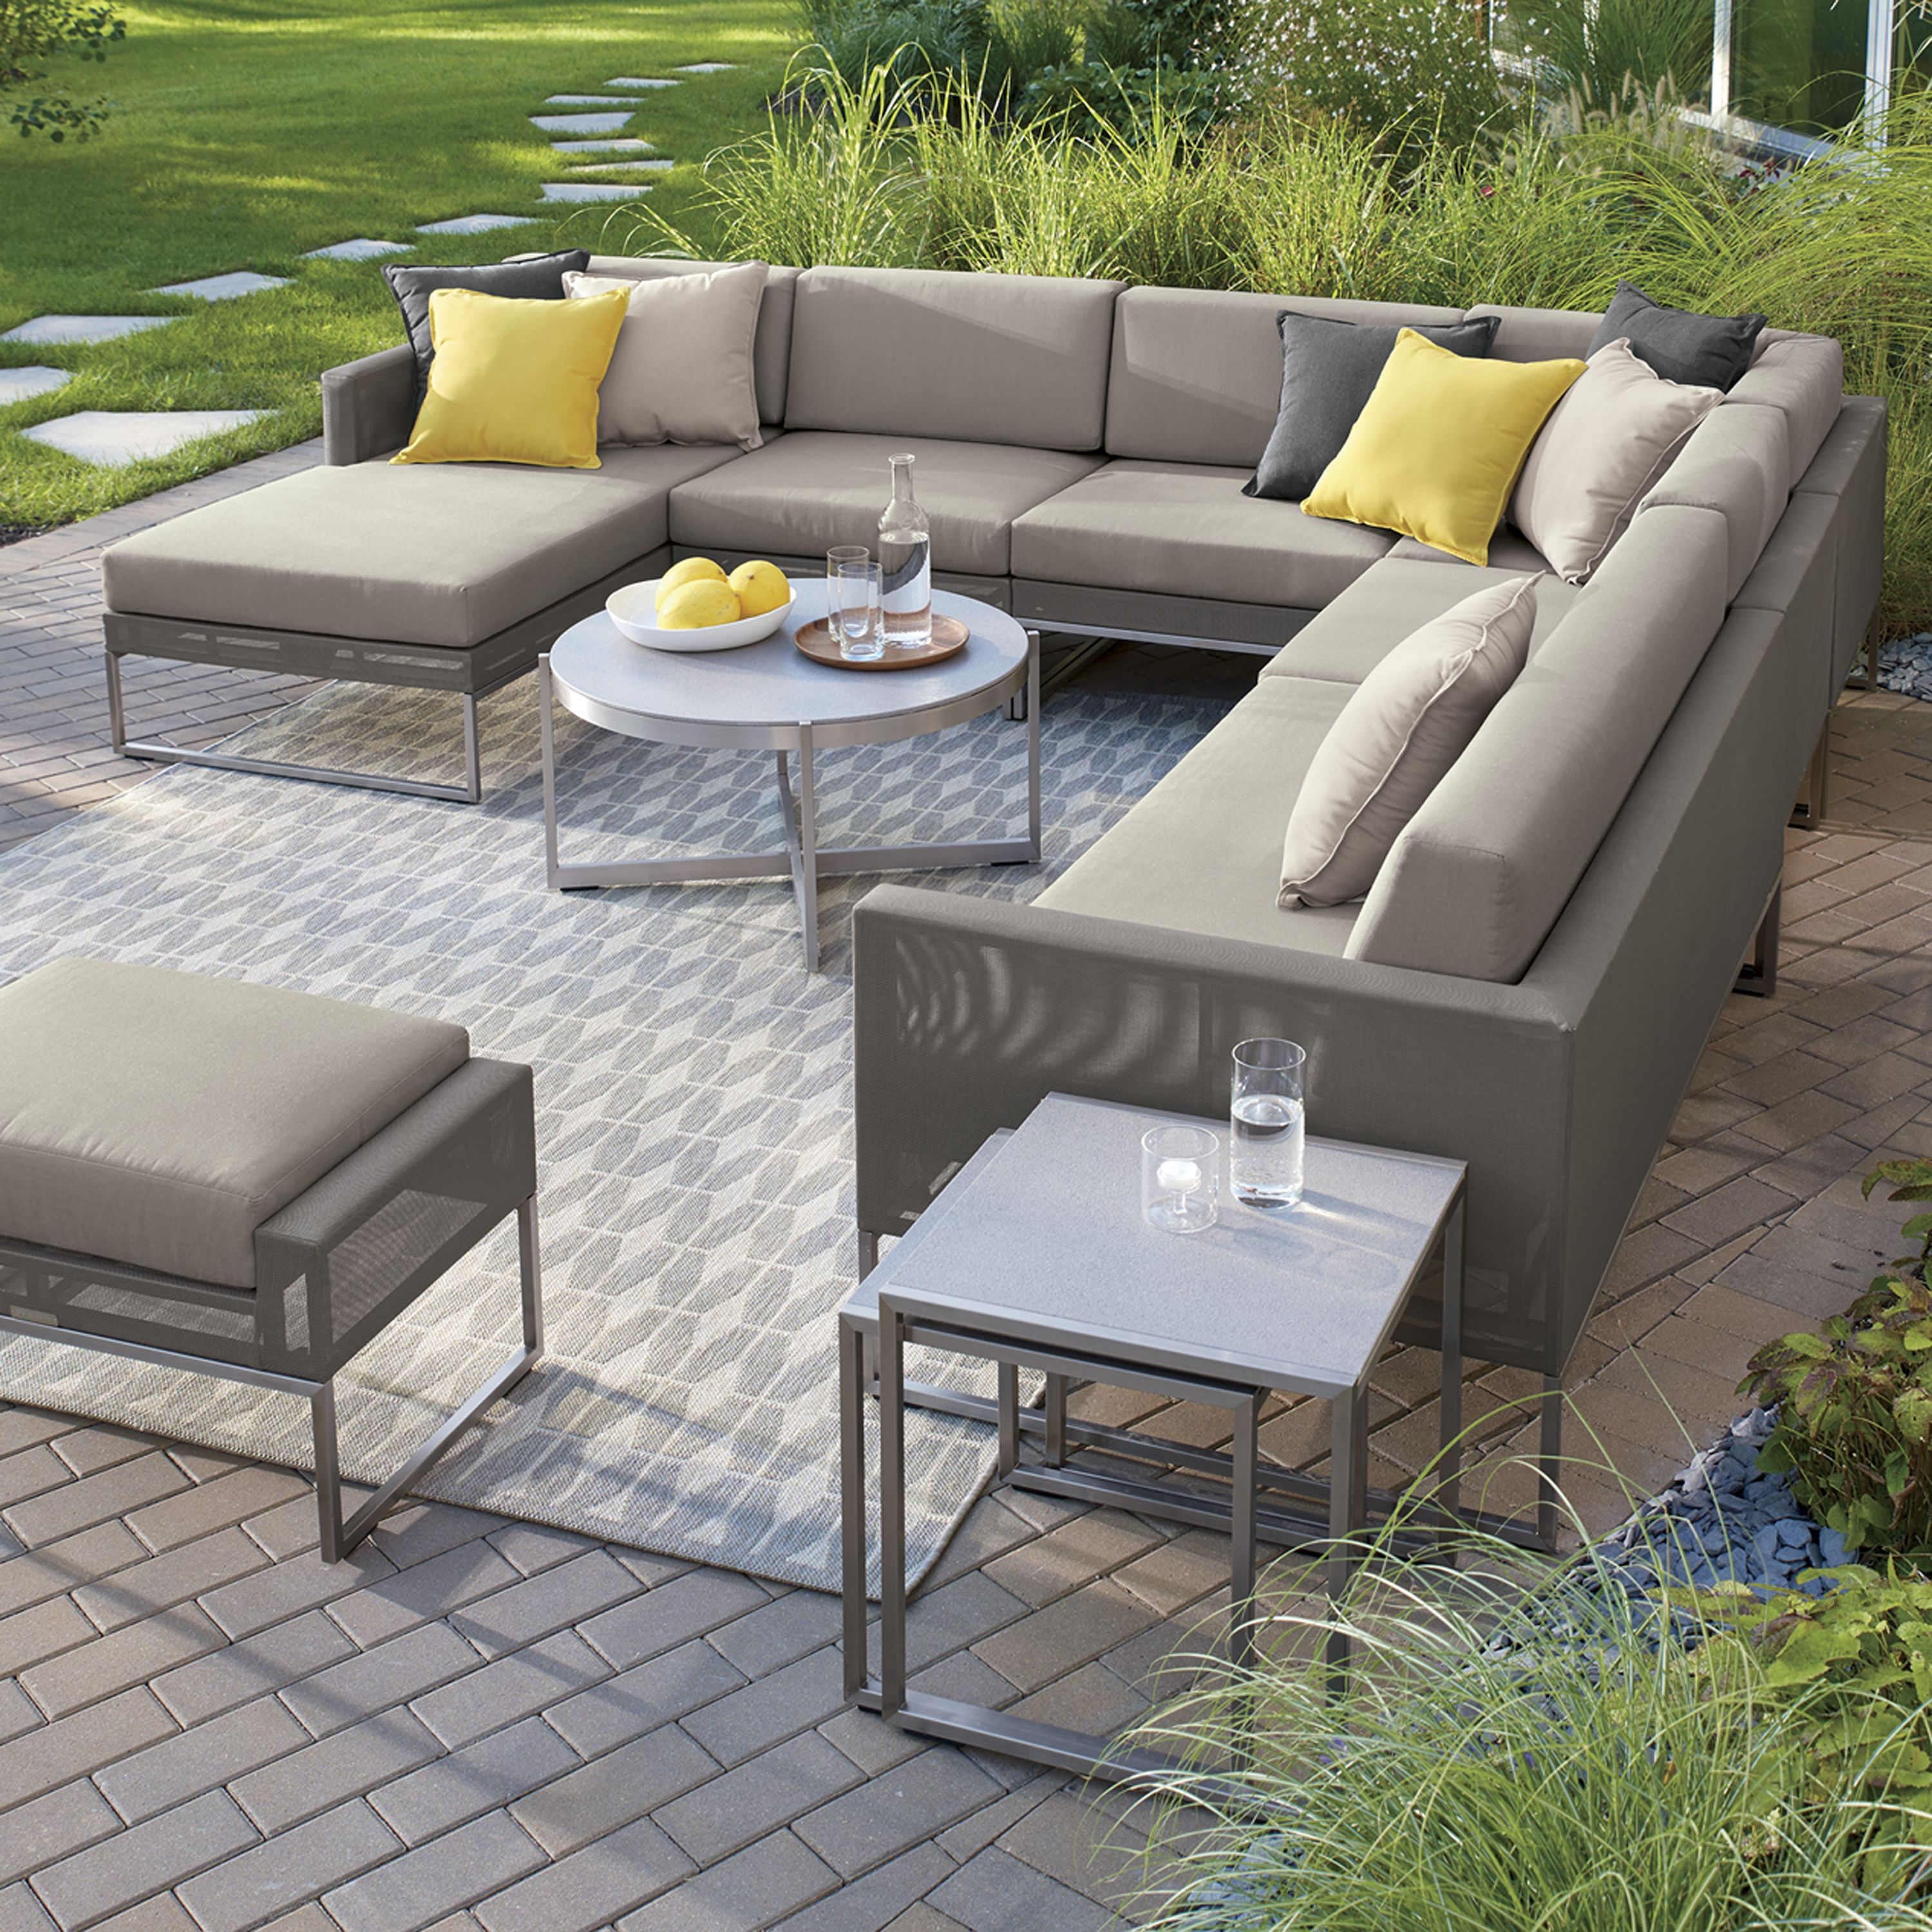 Genial Our Urban Style Dune Left Arm Chaise Truly Modern Indoor Furniture That  Lives Outdoors. A Sleek, Outdoor Grade Stainless Steel Frame Is Upholstered  In Taupe ...